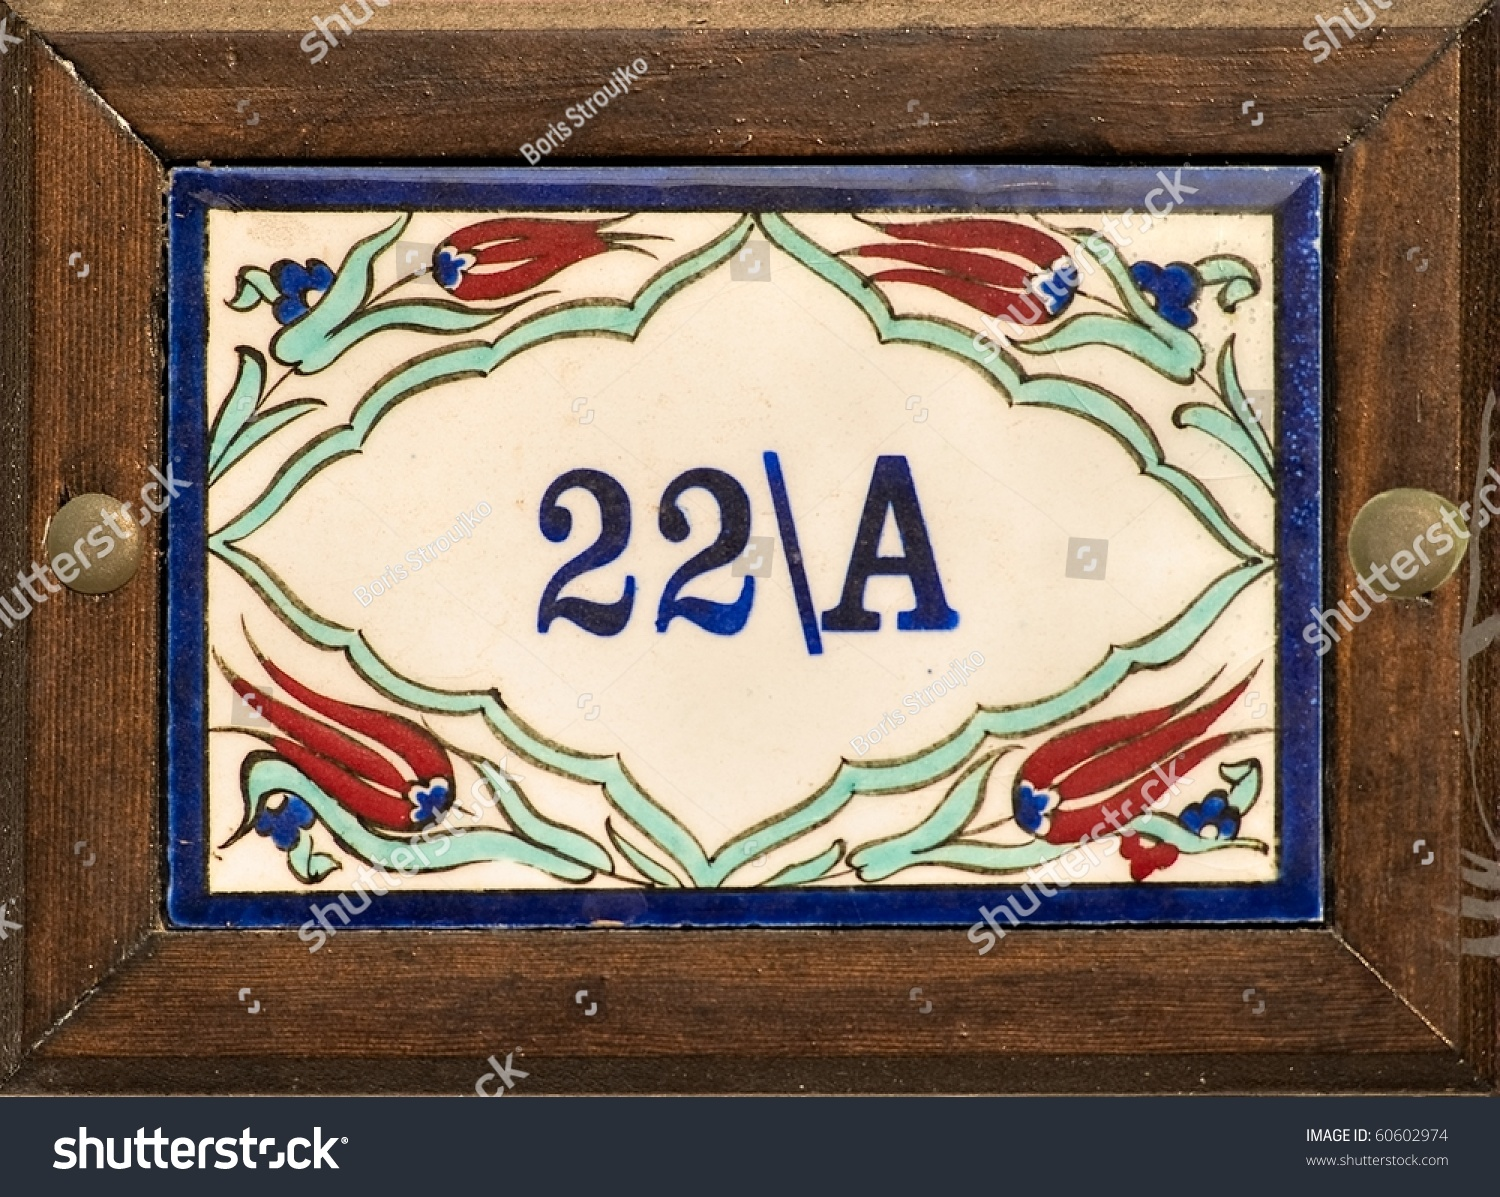 Ceramic tile house numbers gallery tile flooring design ideas ceramic tile house numbers images tile flooring design ideas ceramic tile house numbers image collections tile dailygadgetfo Gallery